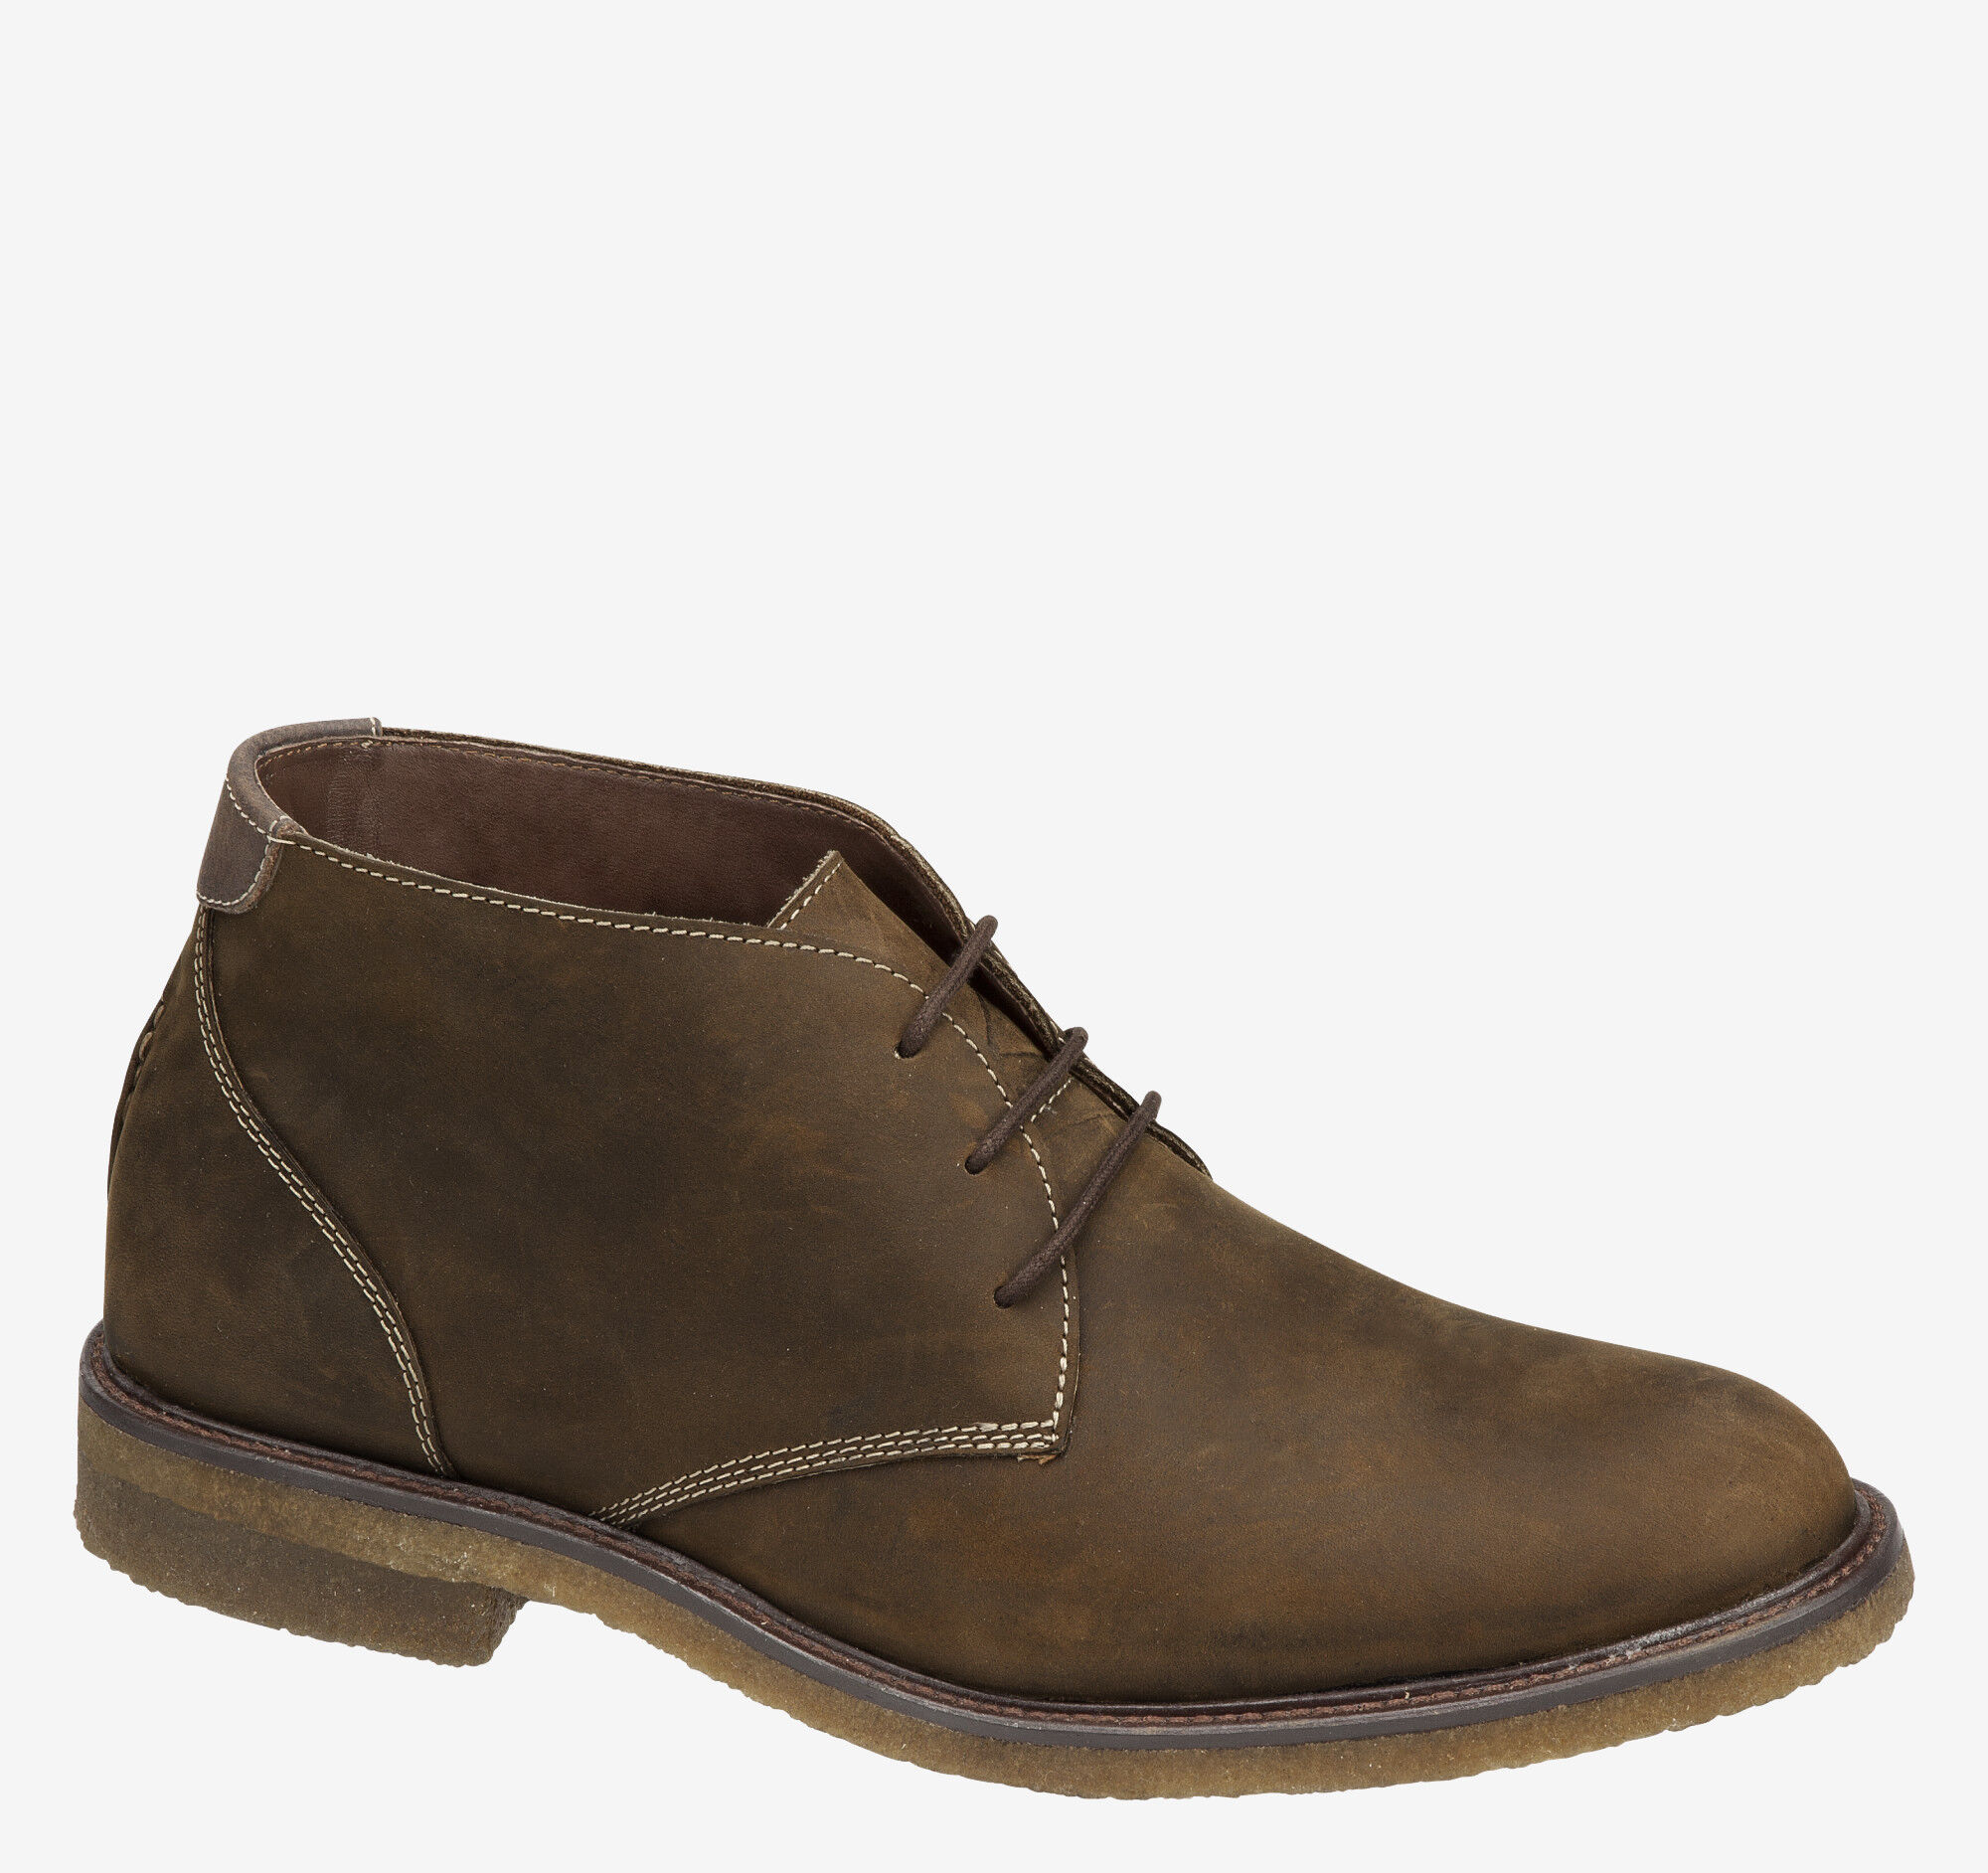 Copeland Chukka | Johnston & Murphy